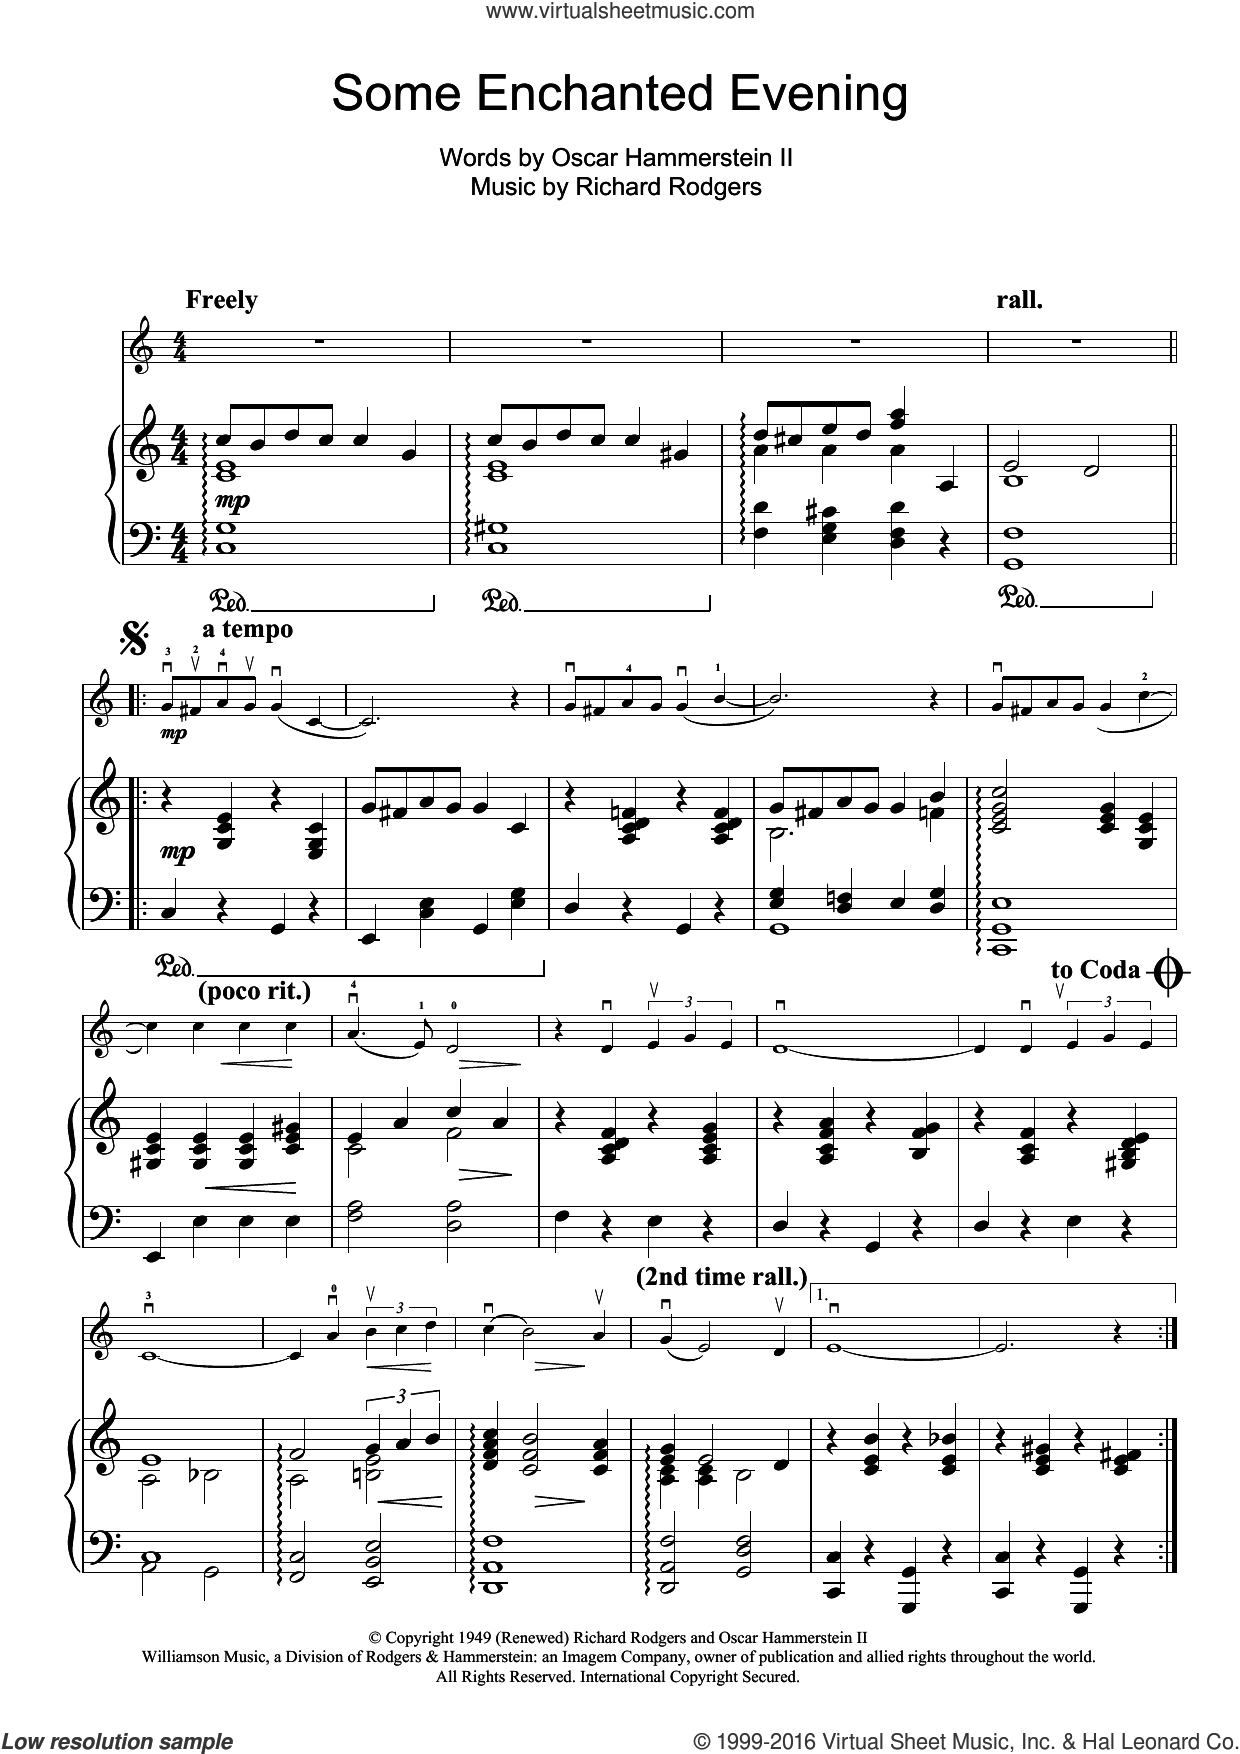 Some Enchanted Evening (from South Pacific) sheet music for violin solo by Richard Rodgers